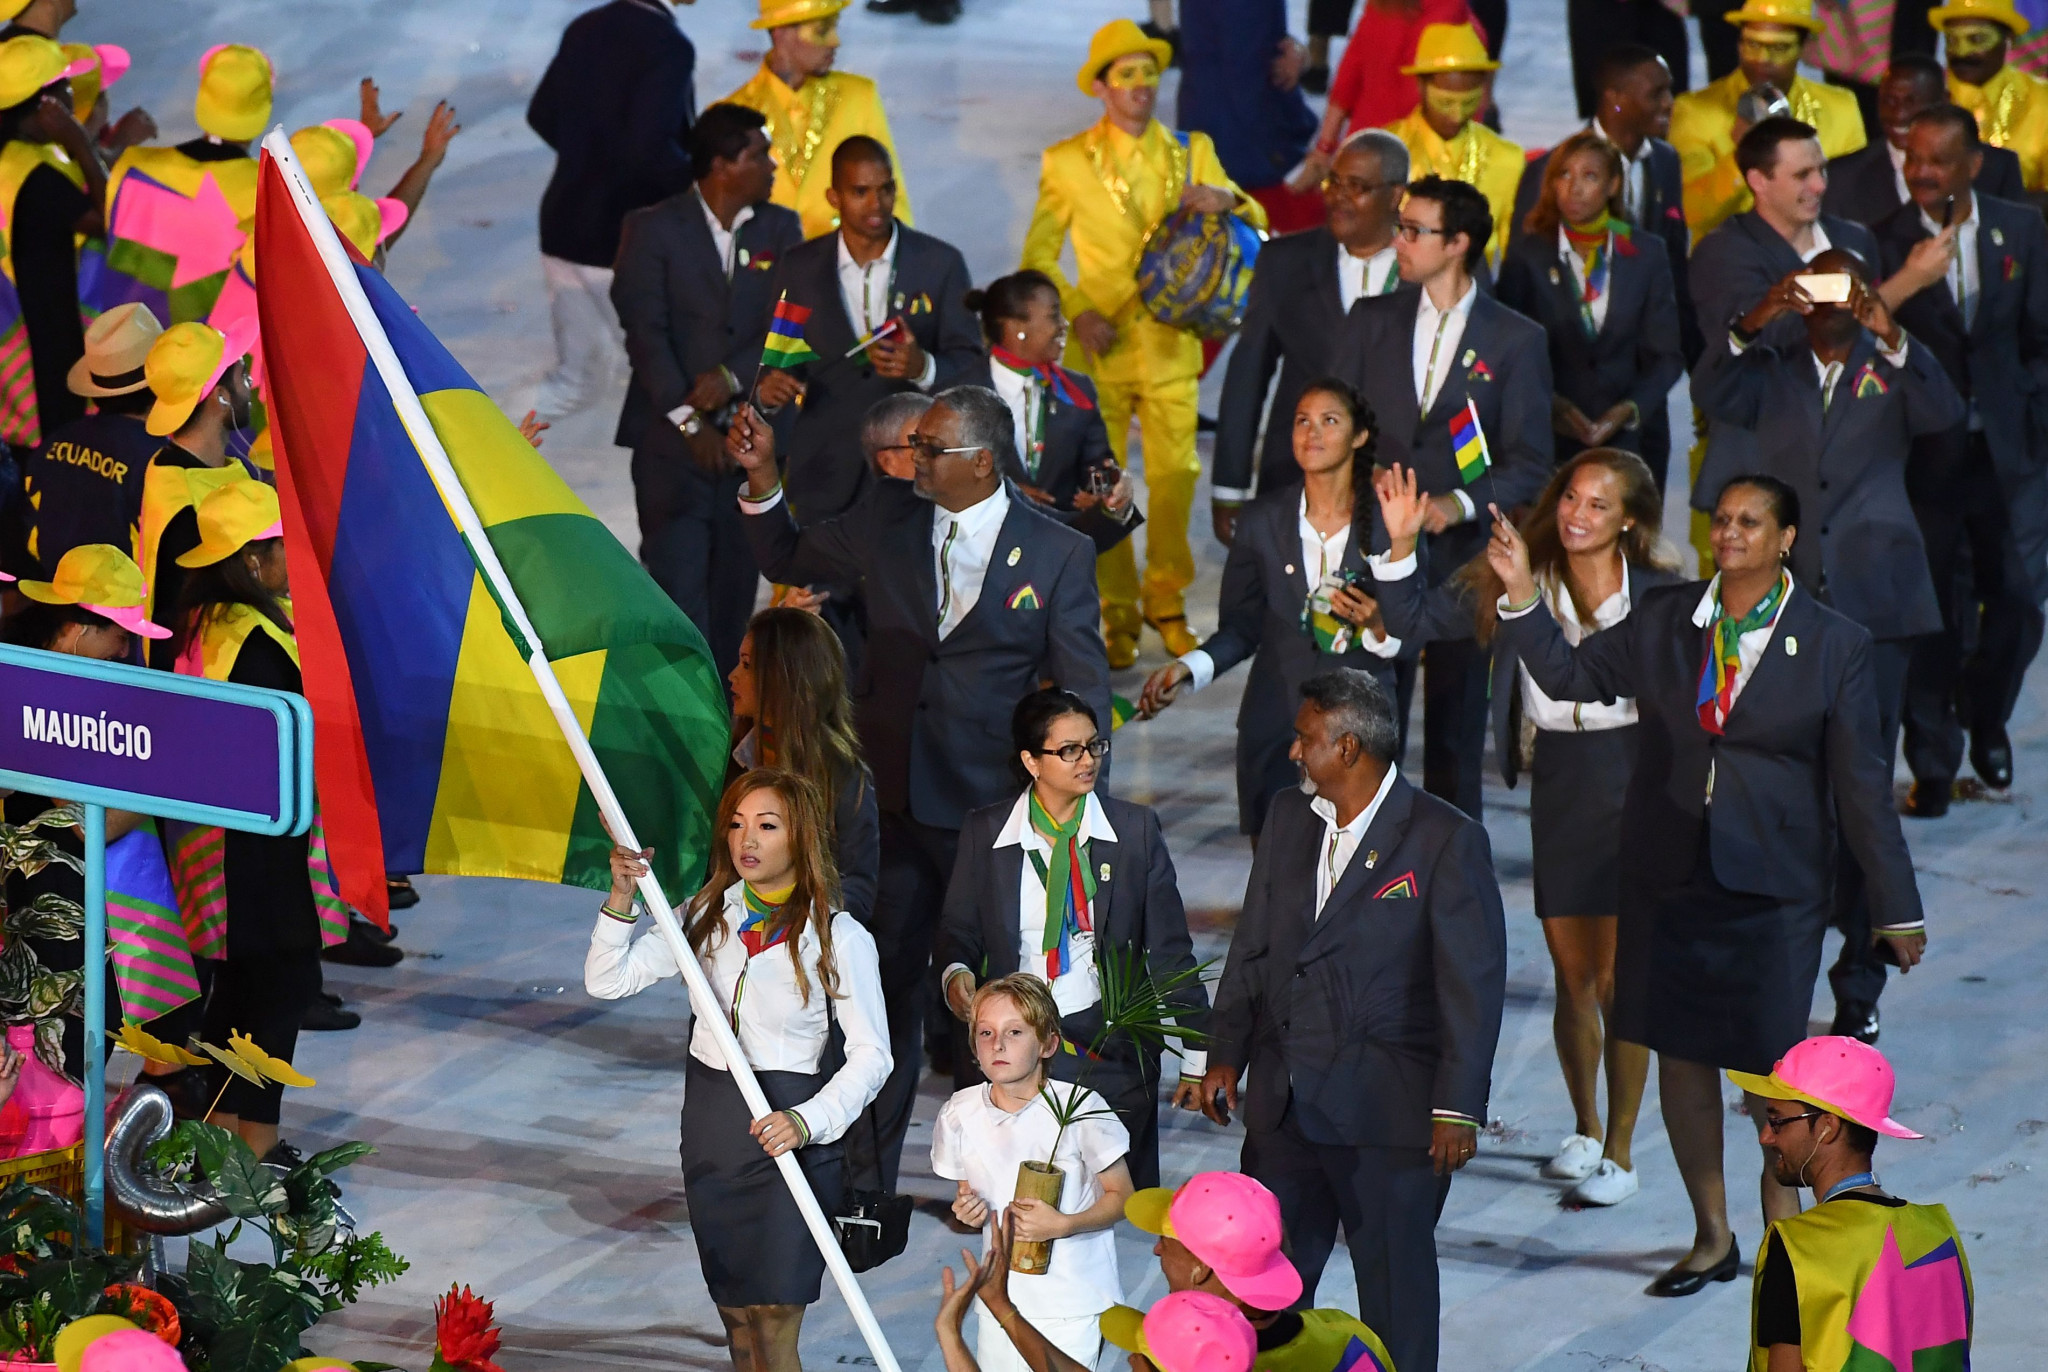 Kate Foo Kune carried Mauritius' flag during the Rio 2016 Opening Ceremony ©Getty Images